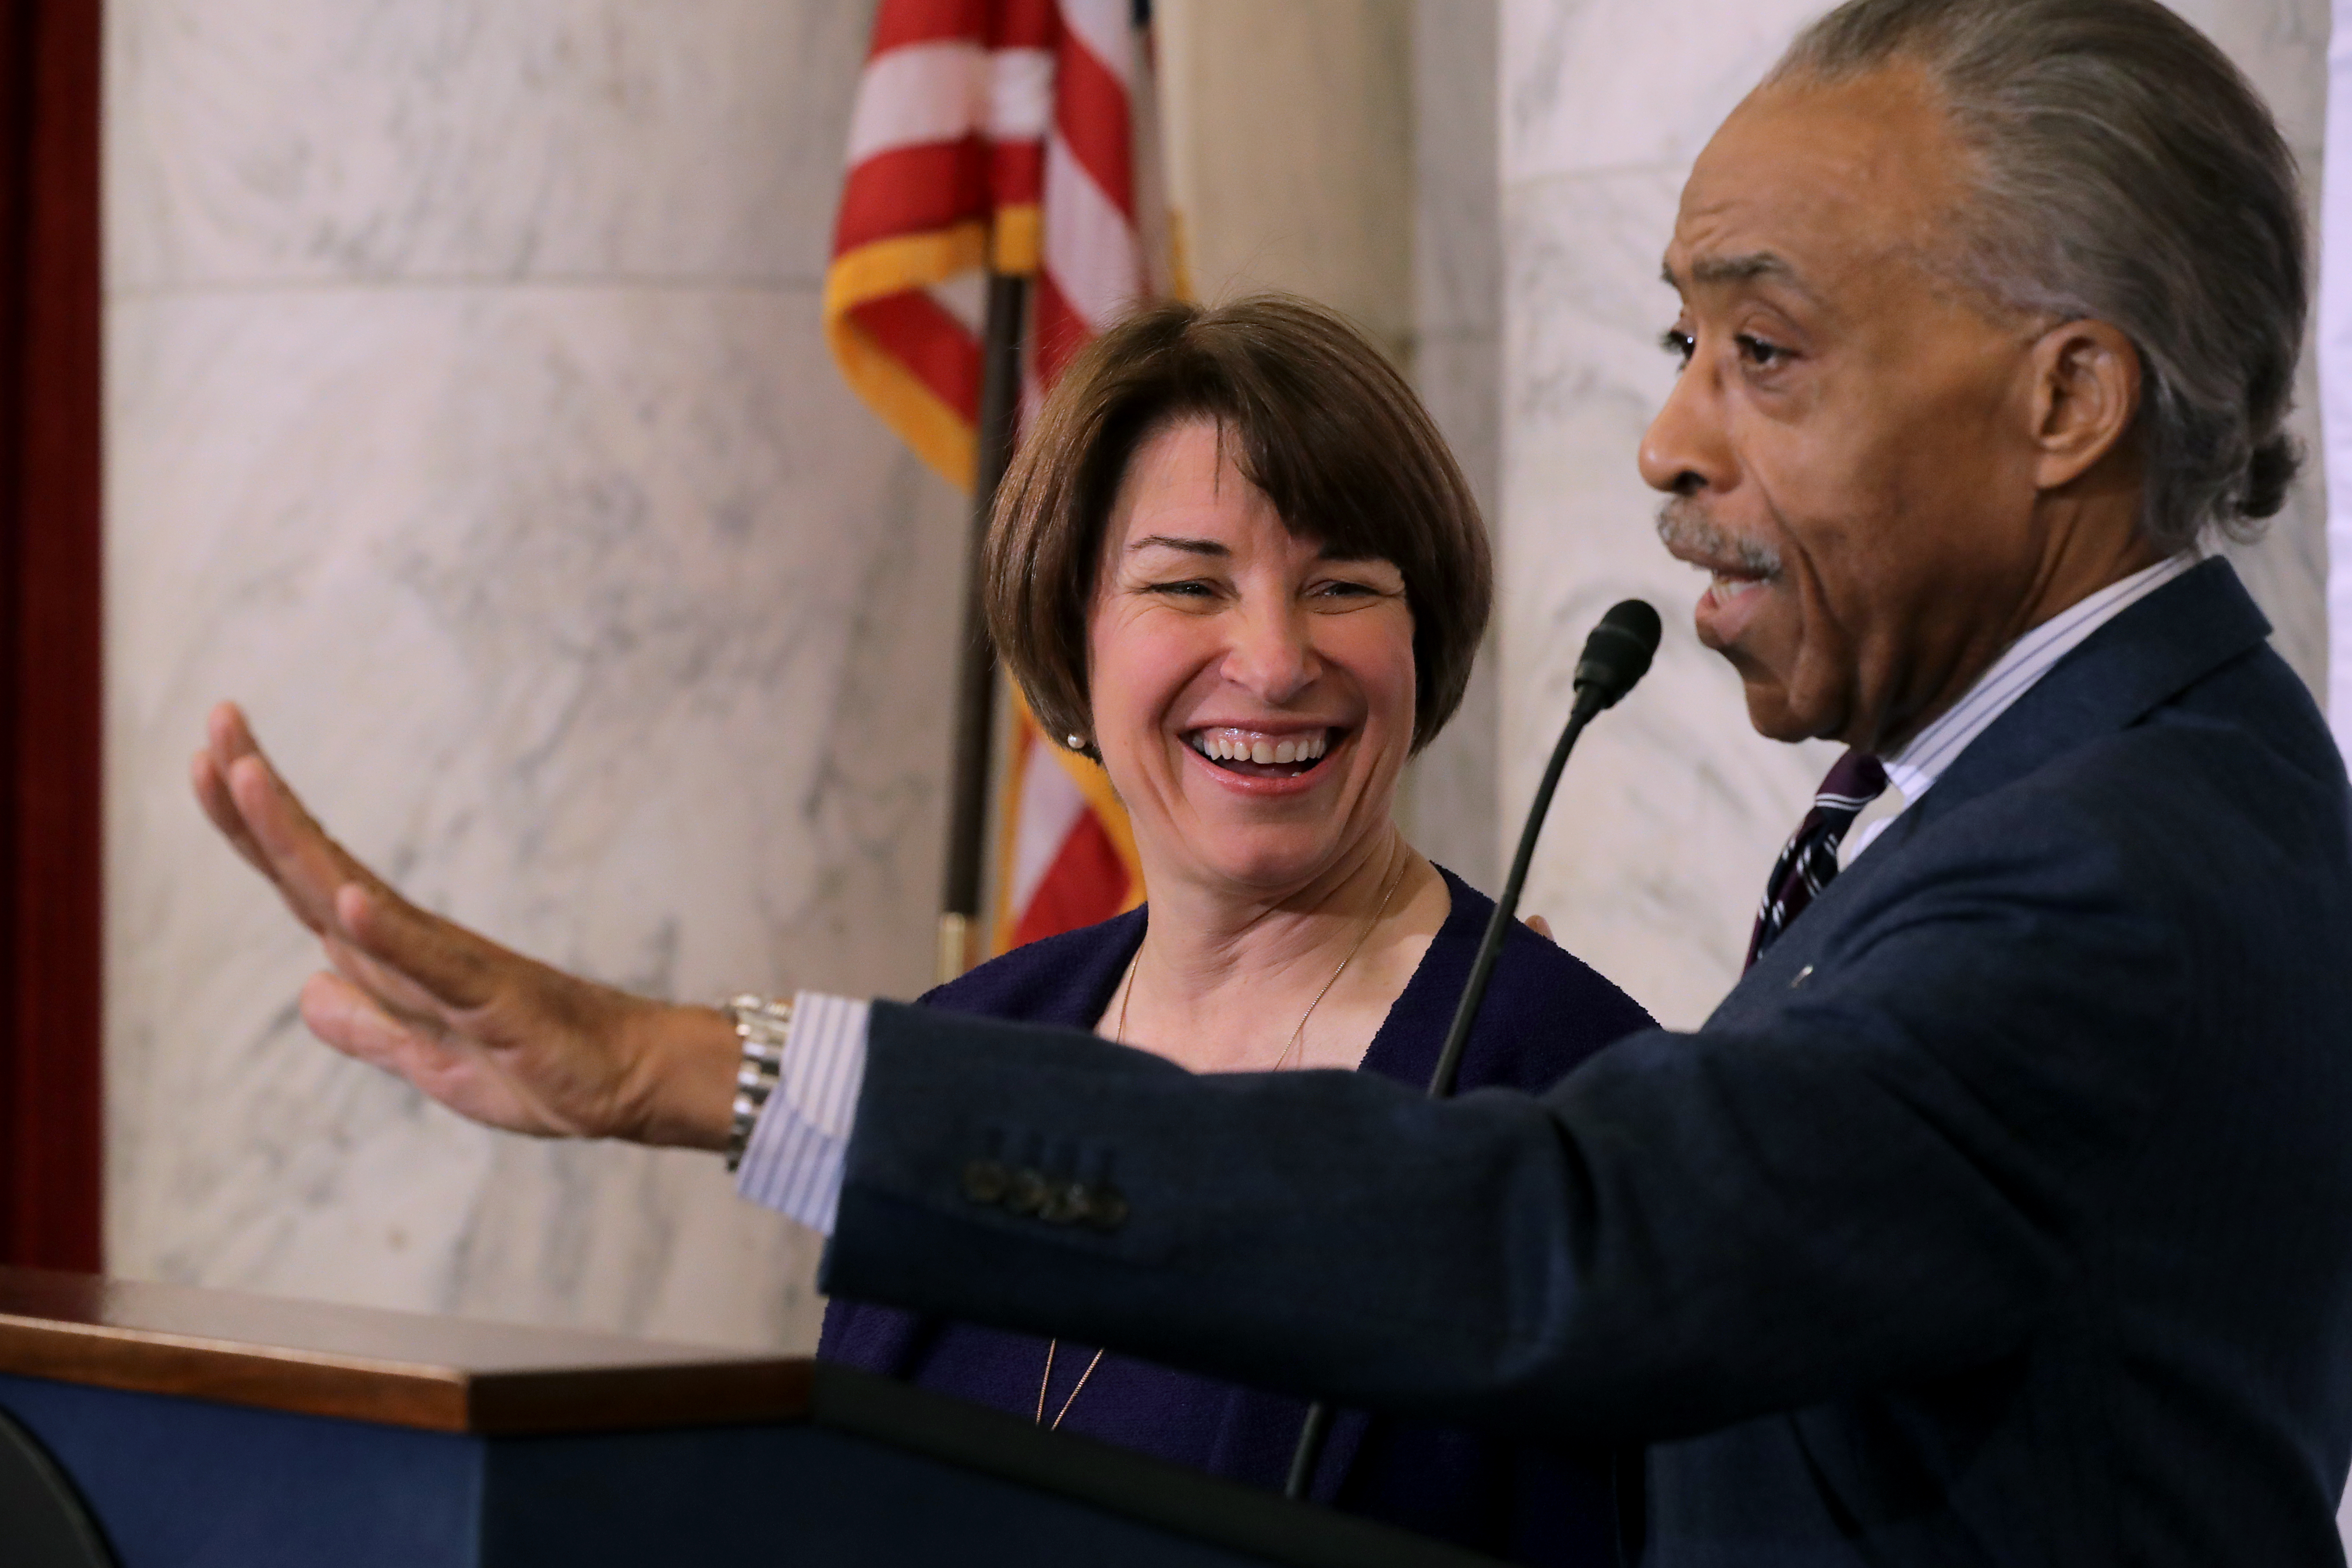 Klobuchar timeline: A life of law and politics led to presidential aspirations